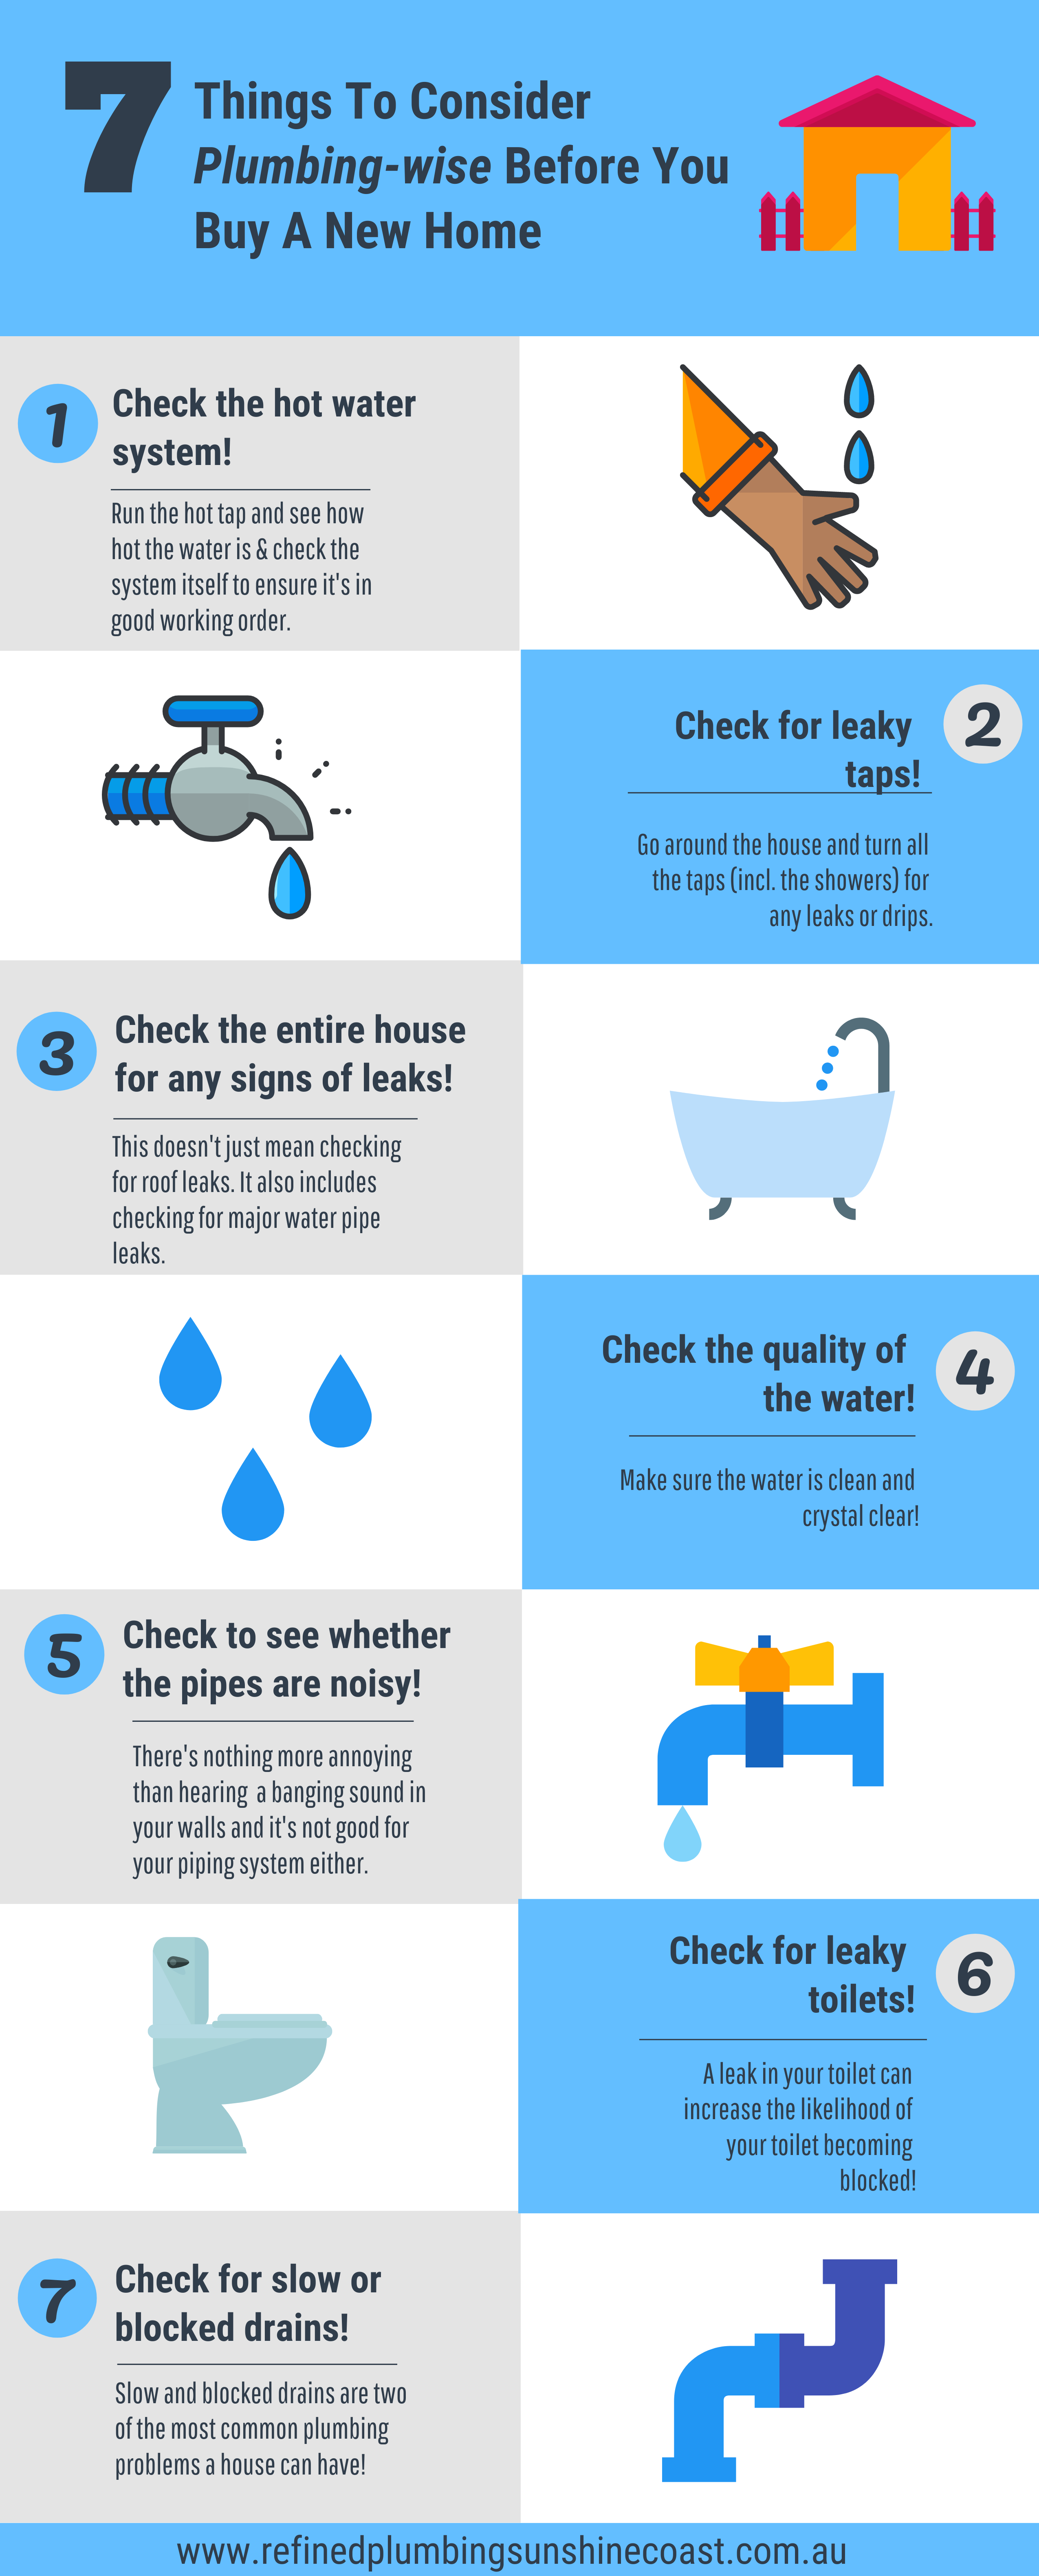 7 plumbing things to check before you purchase a new home